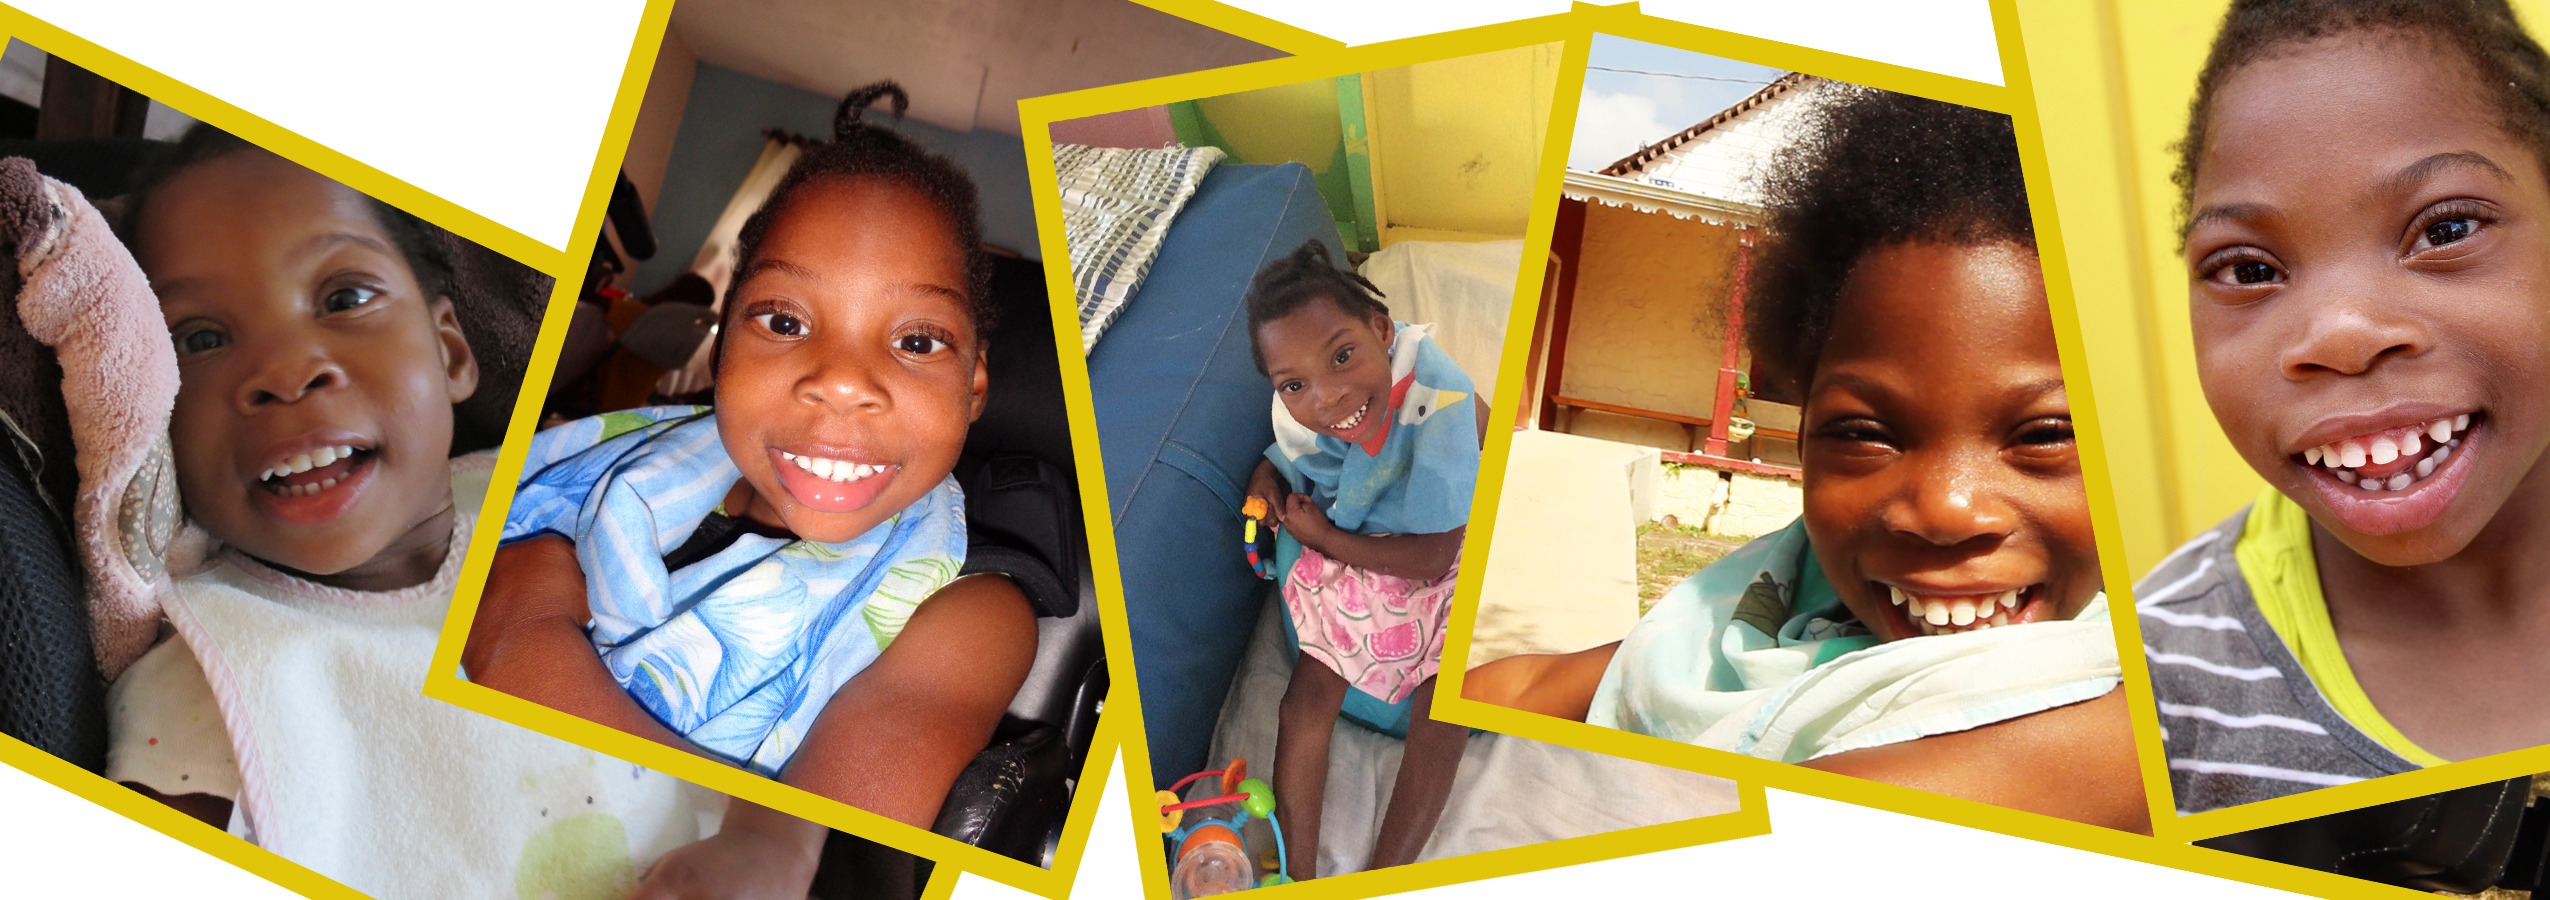 Four photos of Joy, a child in a wheelchair, from when she was 2 years old to when she was 9 years old.